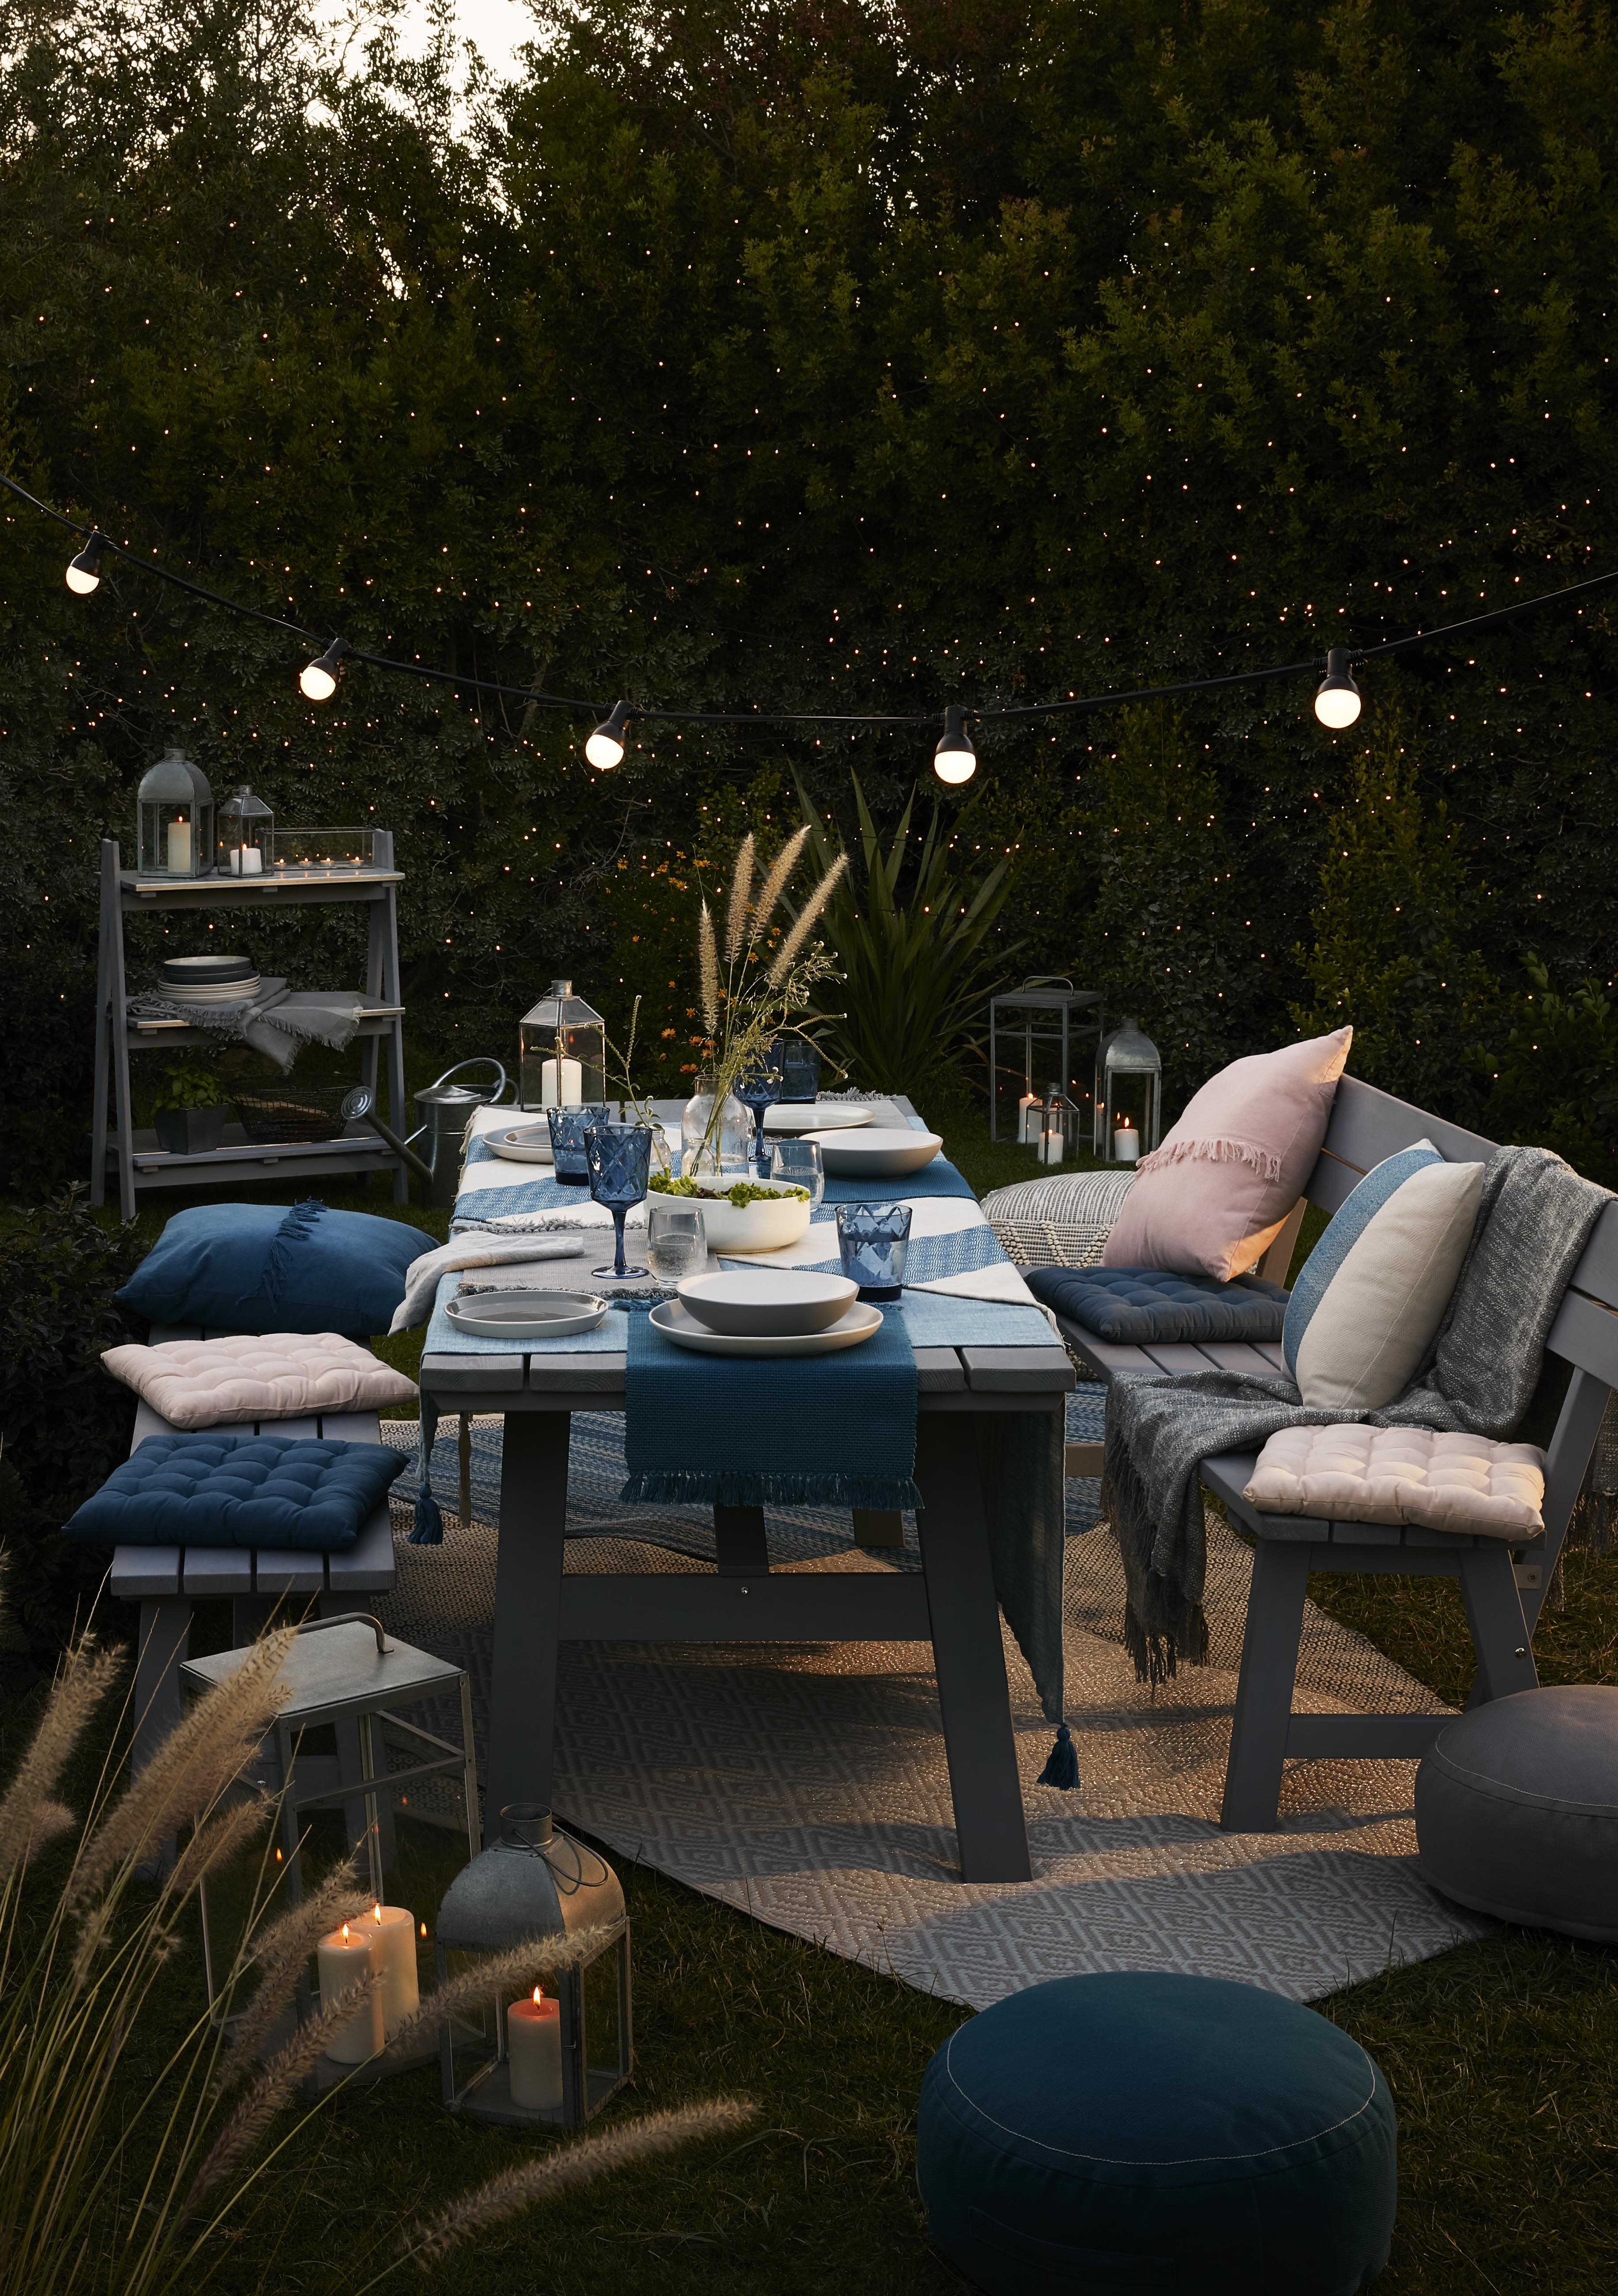 B&Q's NEW Rural outdoor collection can take you from day